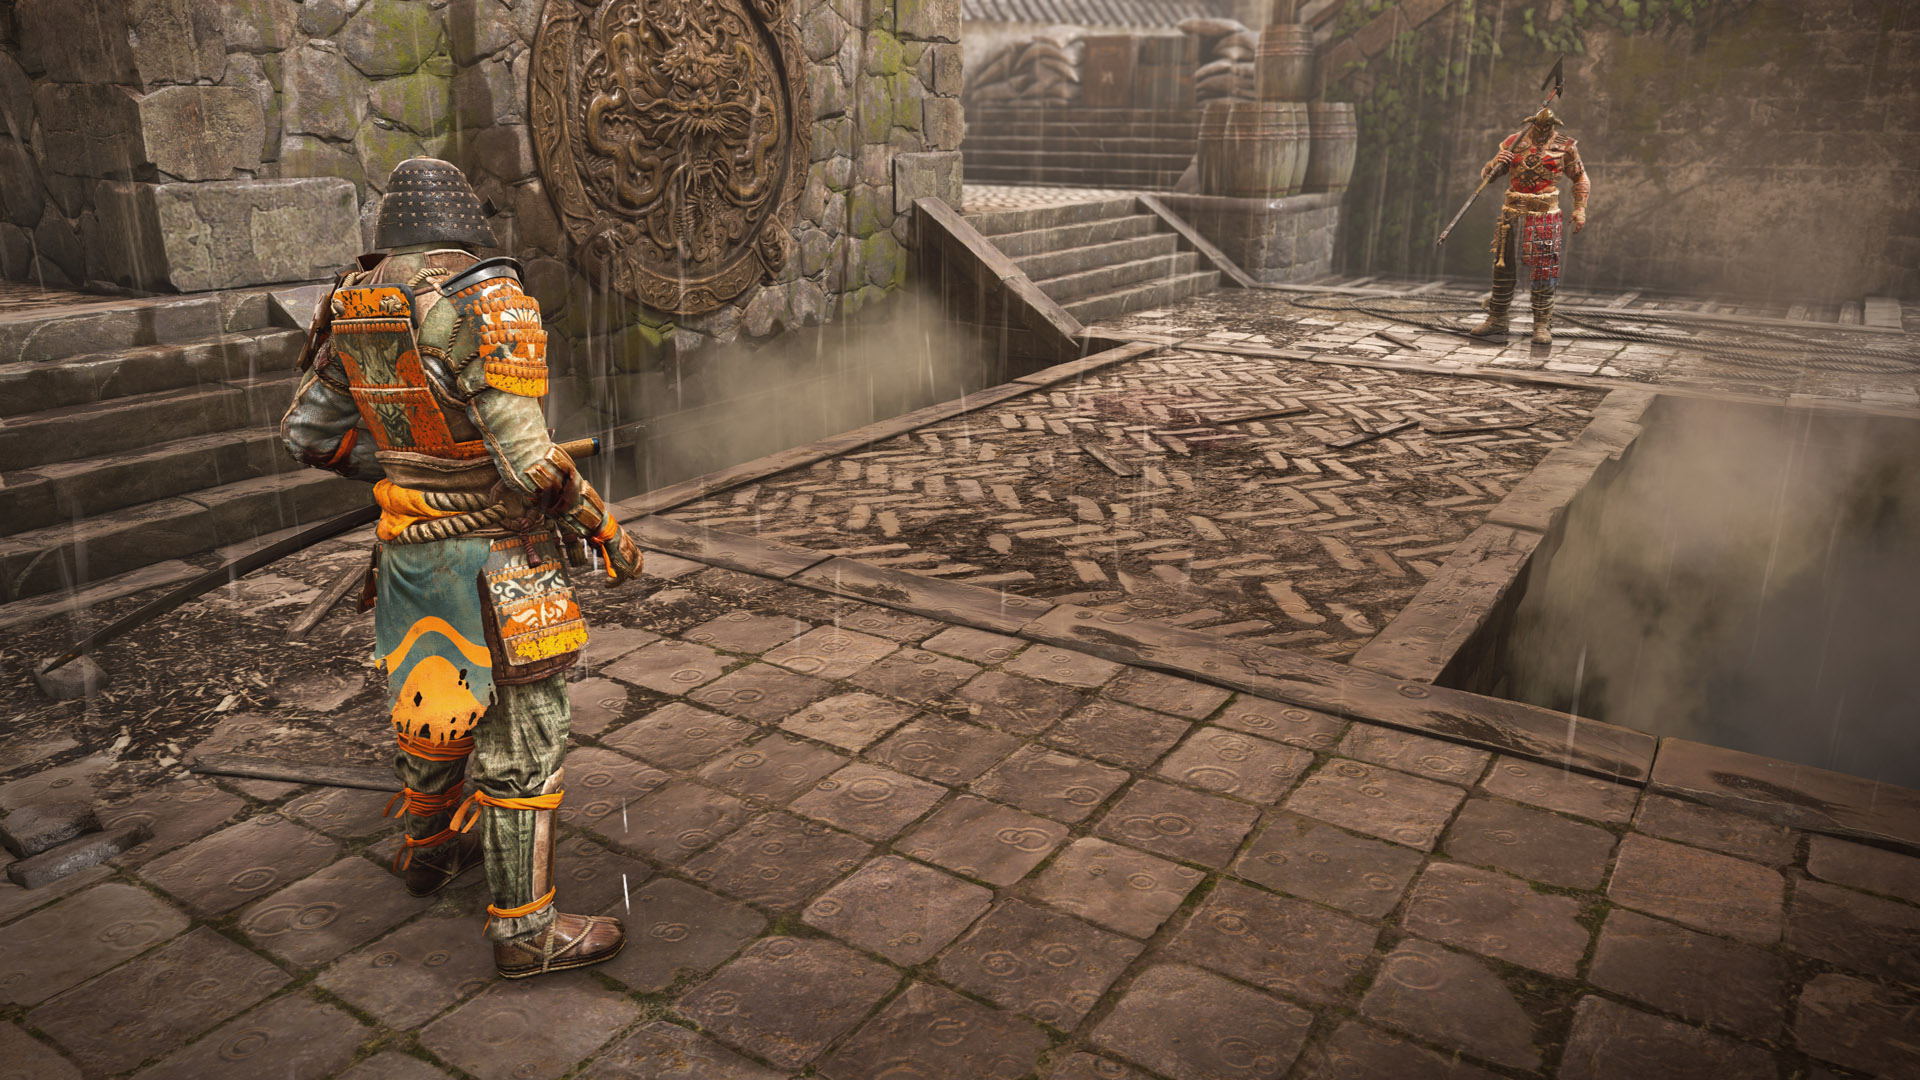 The Orochi is another one of the best characters in For Honor. As a Hybrid, the Orochi is an interesting beast, offering fast attacks and high mobility as its tool to take down enemies.